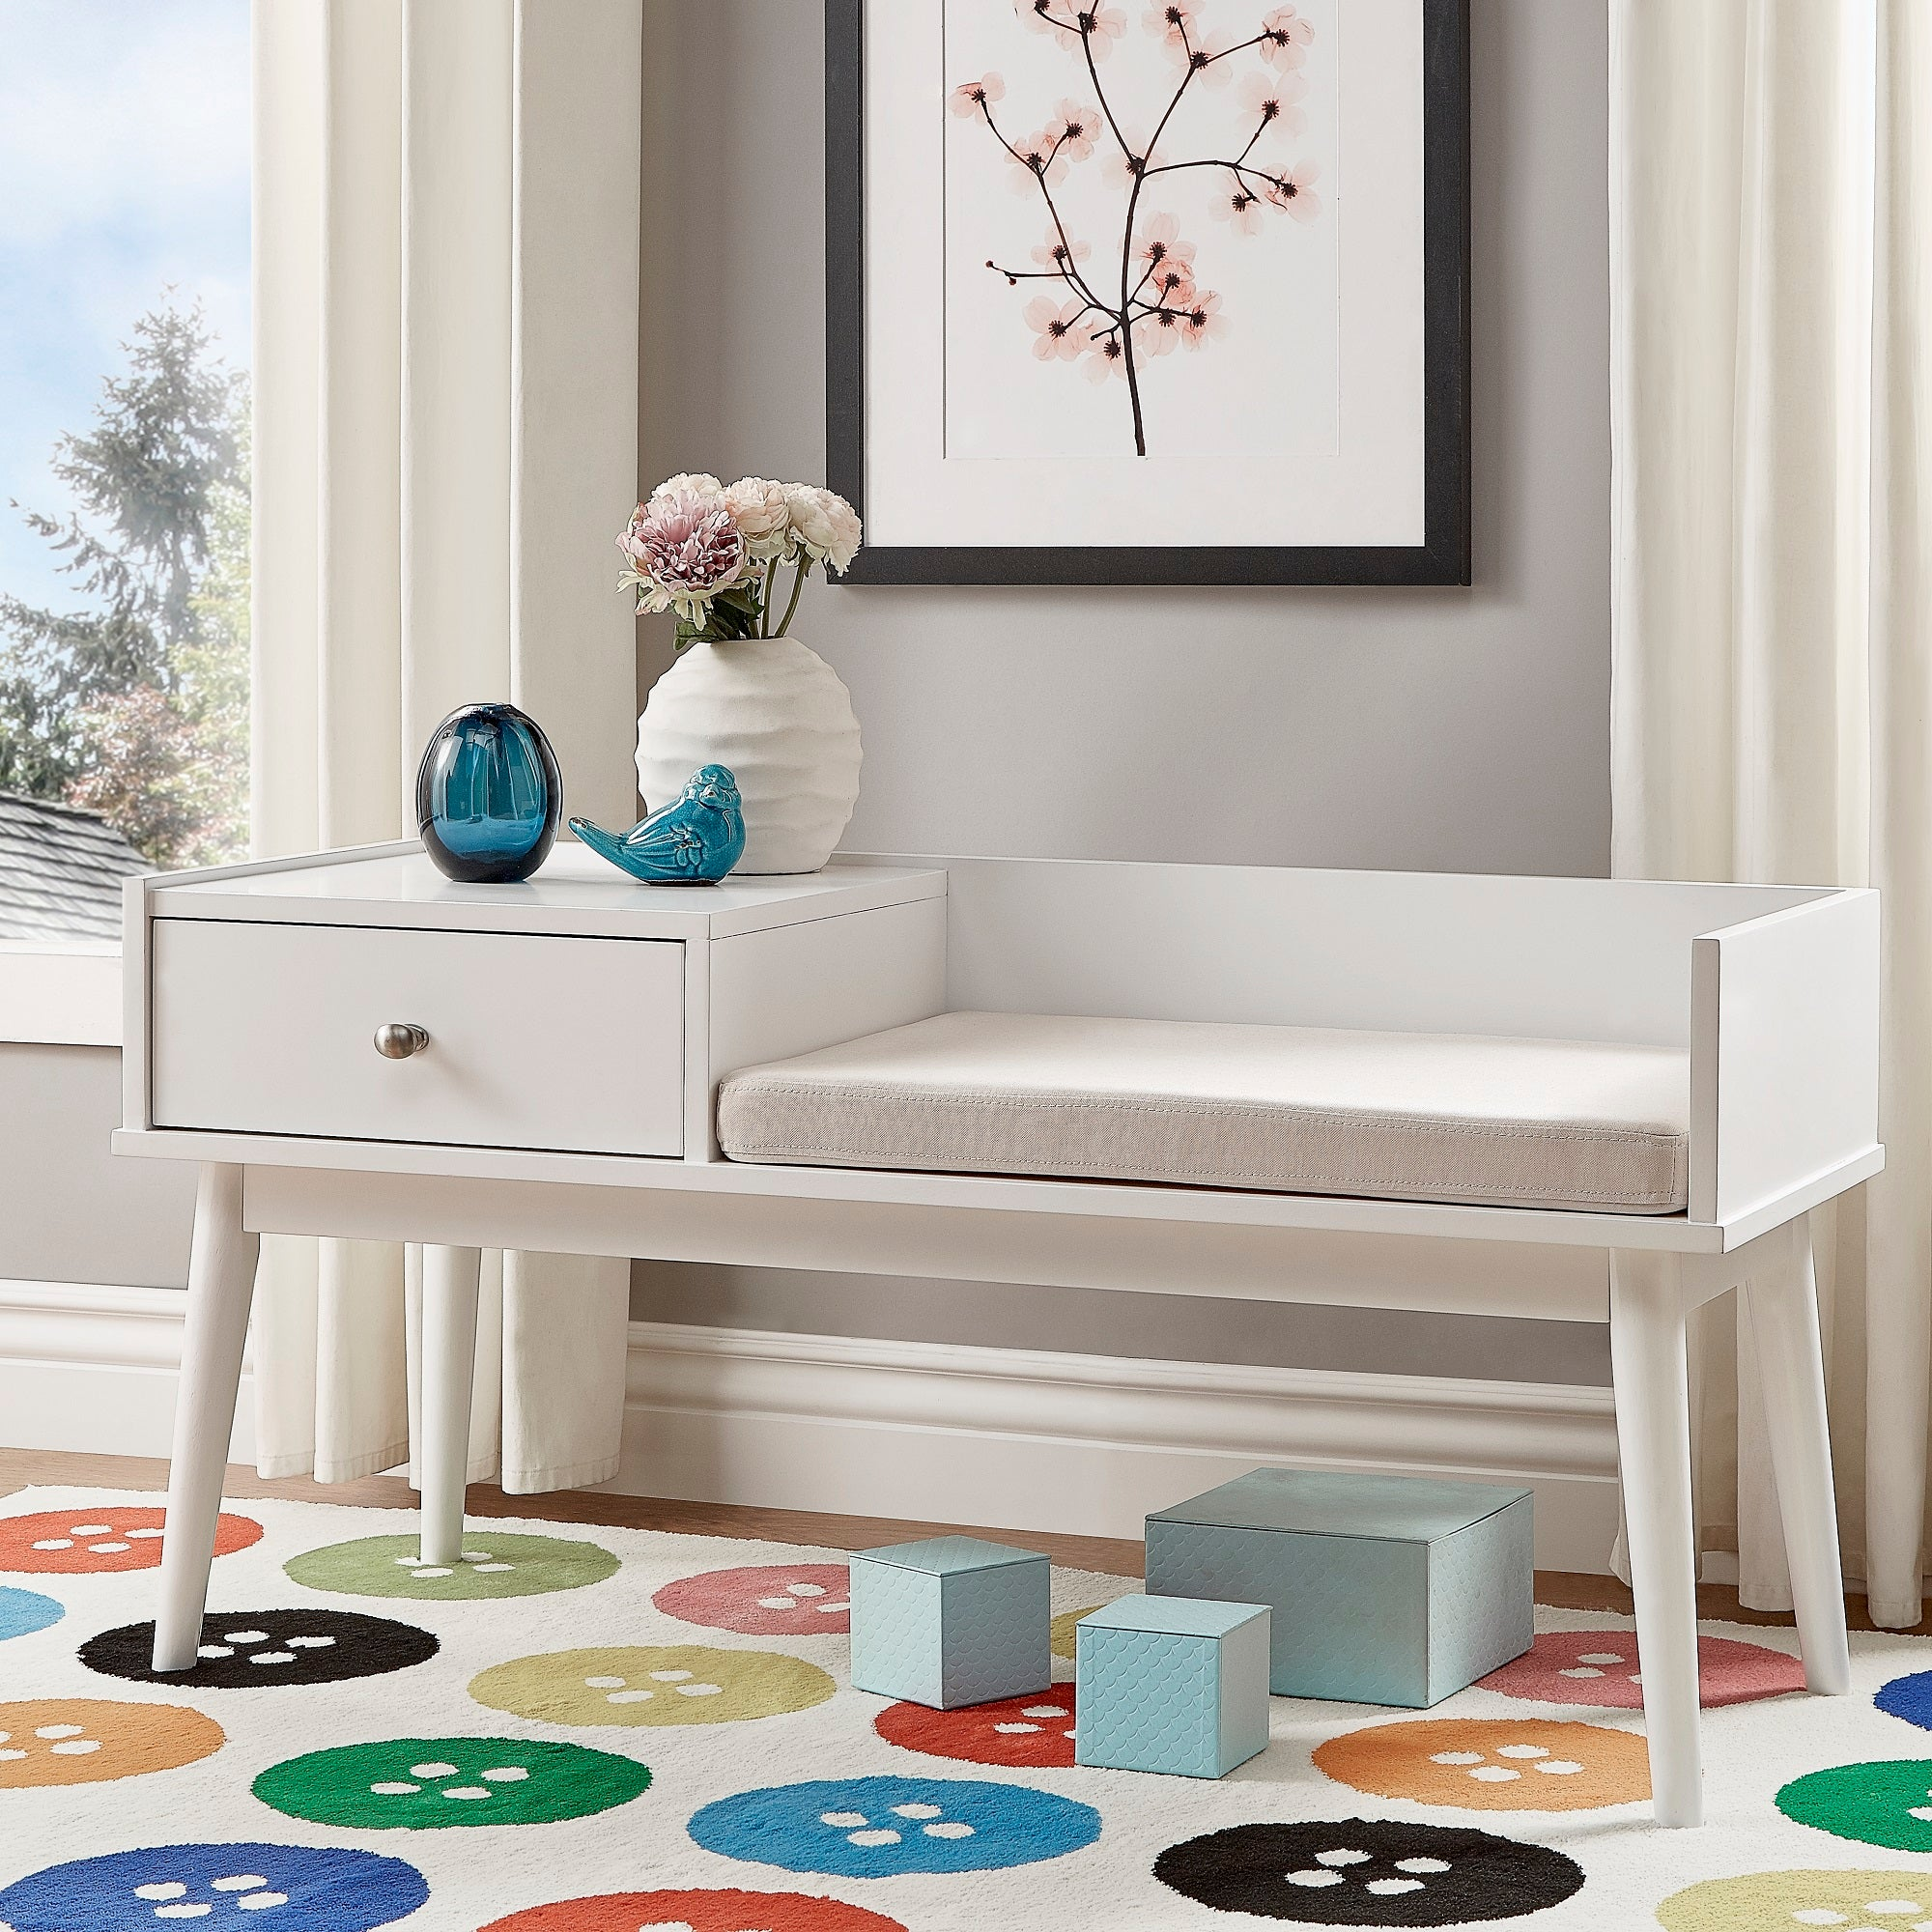 1-Drawer Cushioned Entryway Bench - White